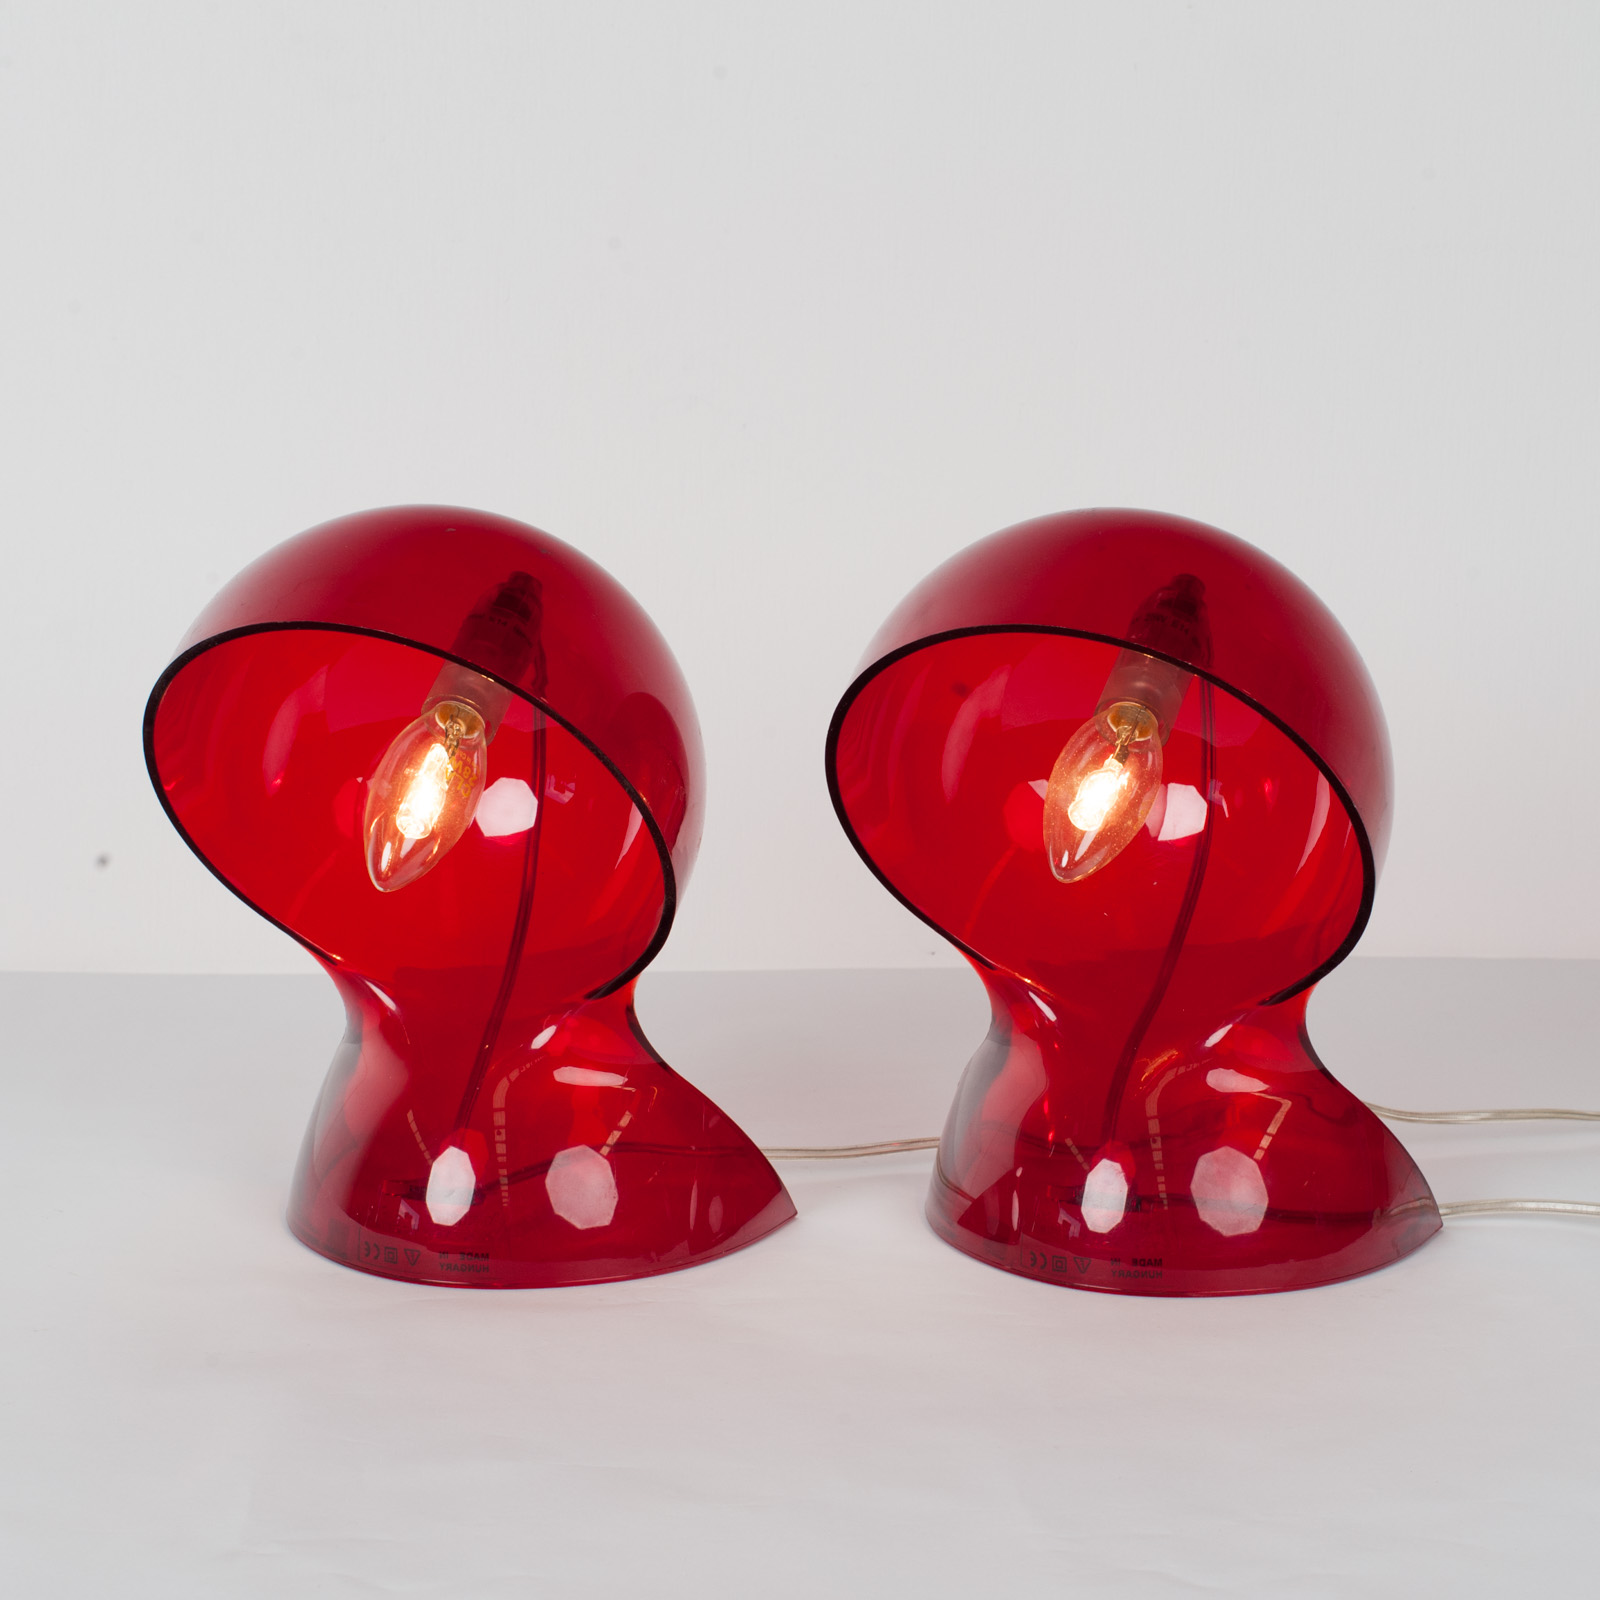 Pair Of Dalu Lamps In Red Plexiglass By Vico Magistretti For Artemide, 1969, Italy4